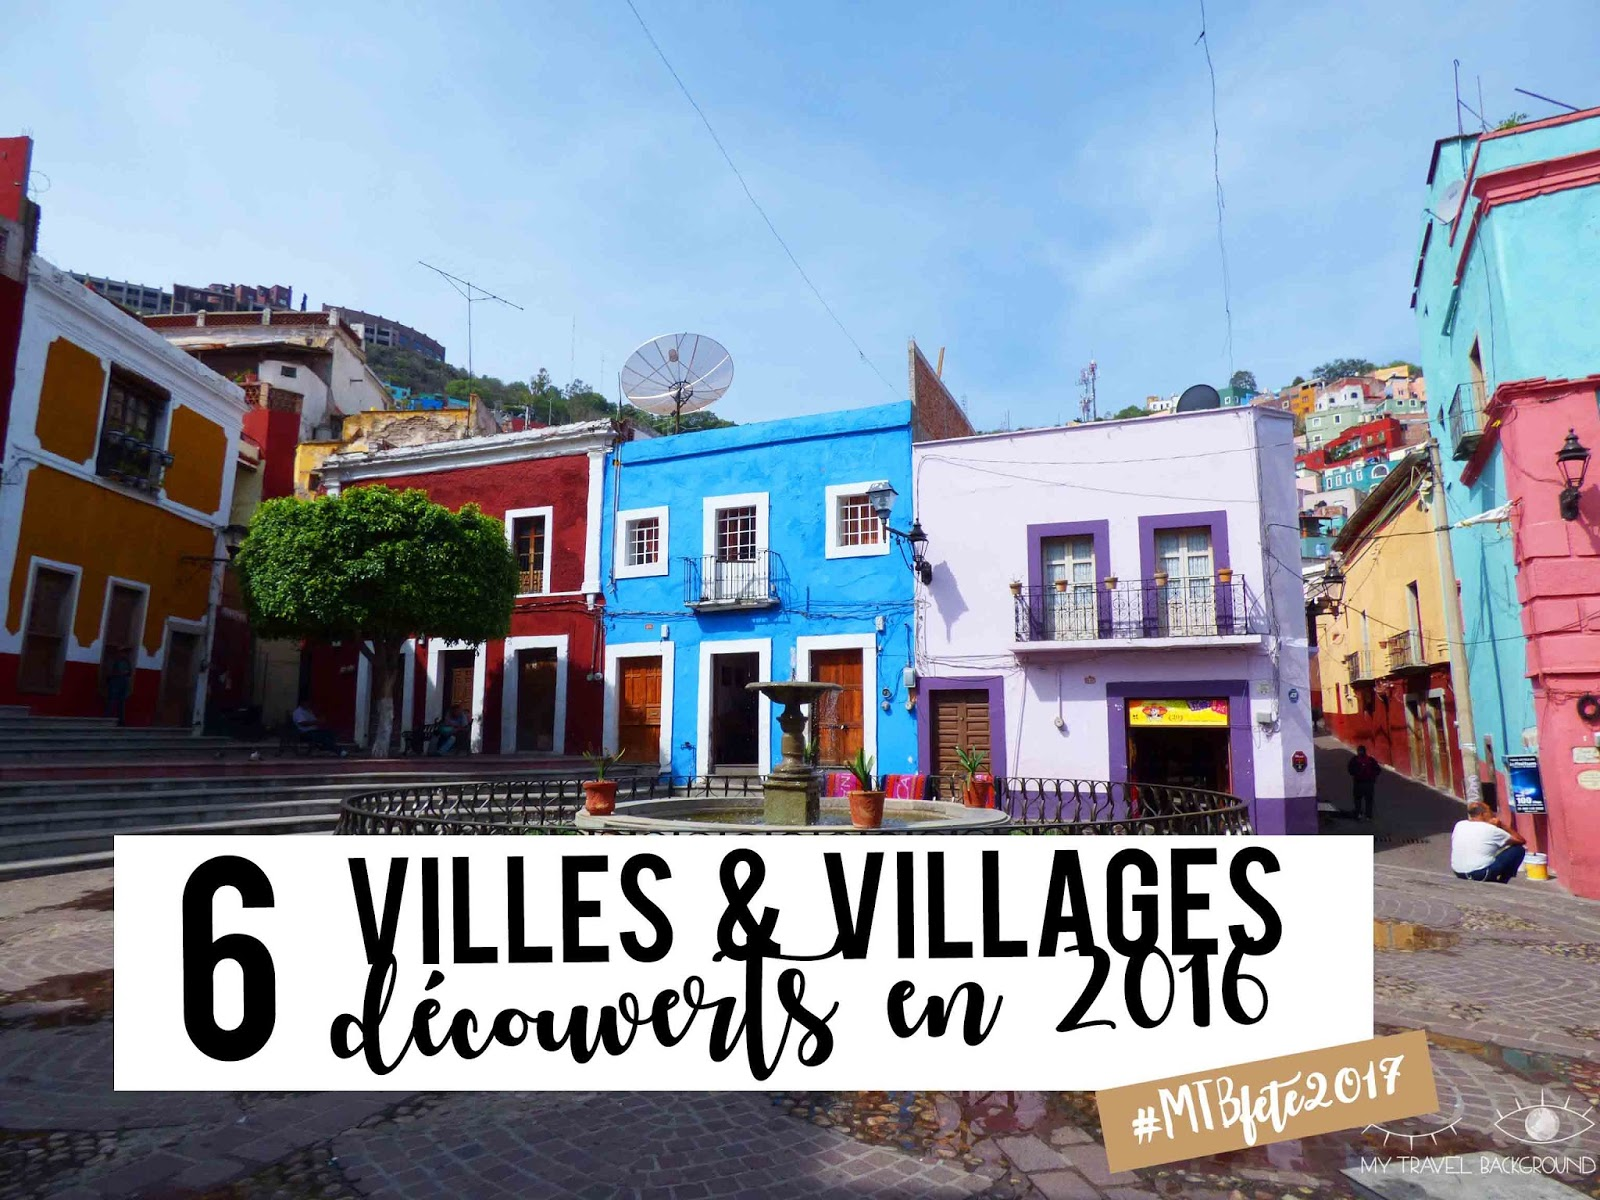 My Travel Background : 6 villes et villages découverts en 2016